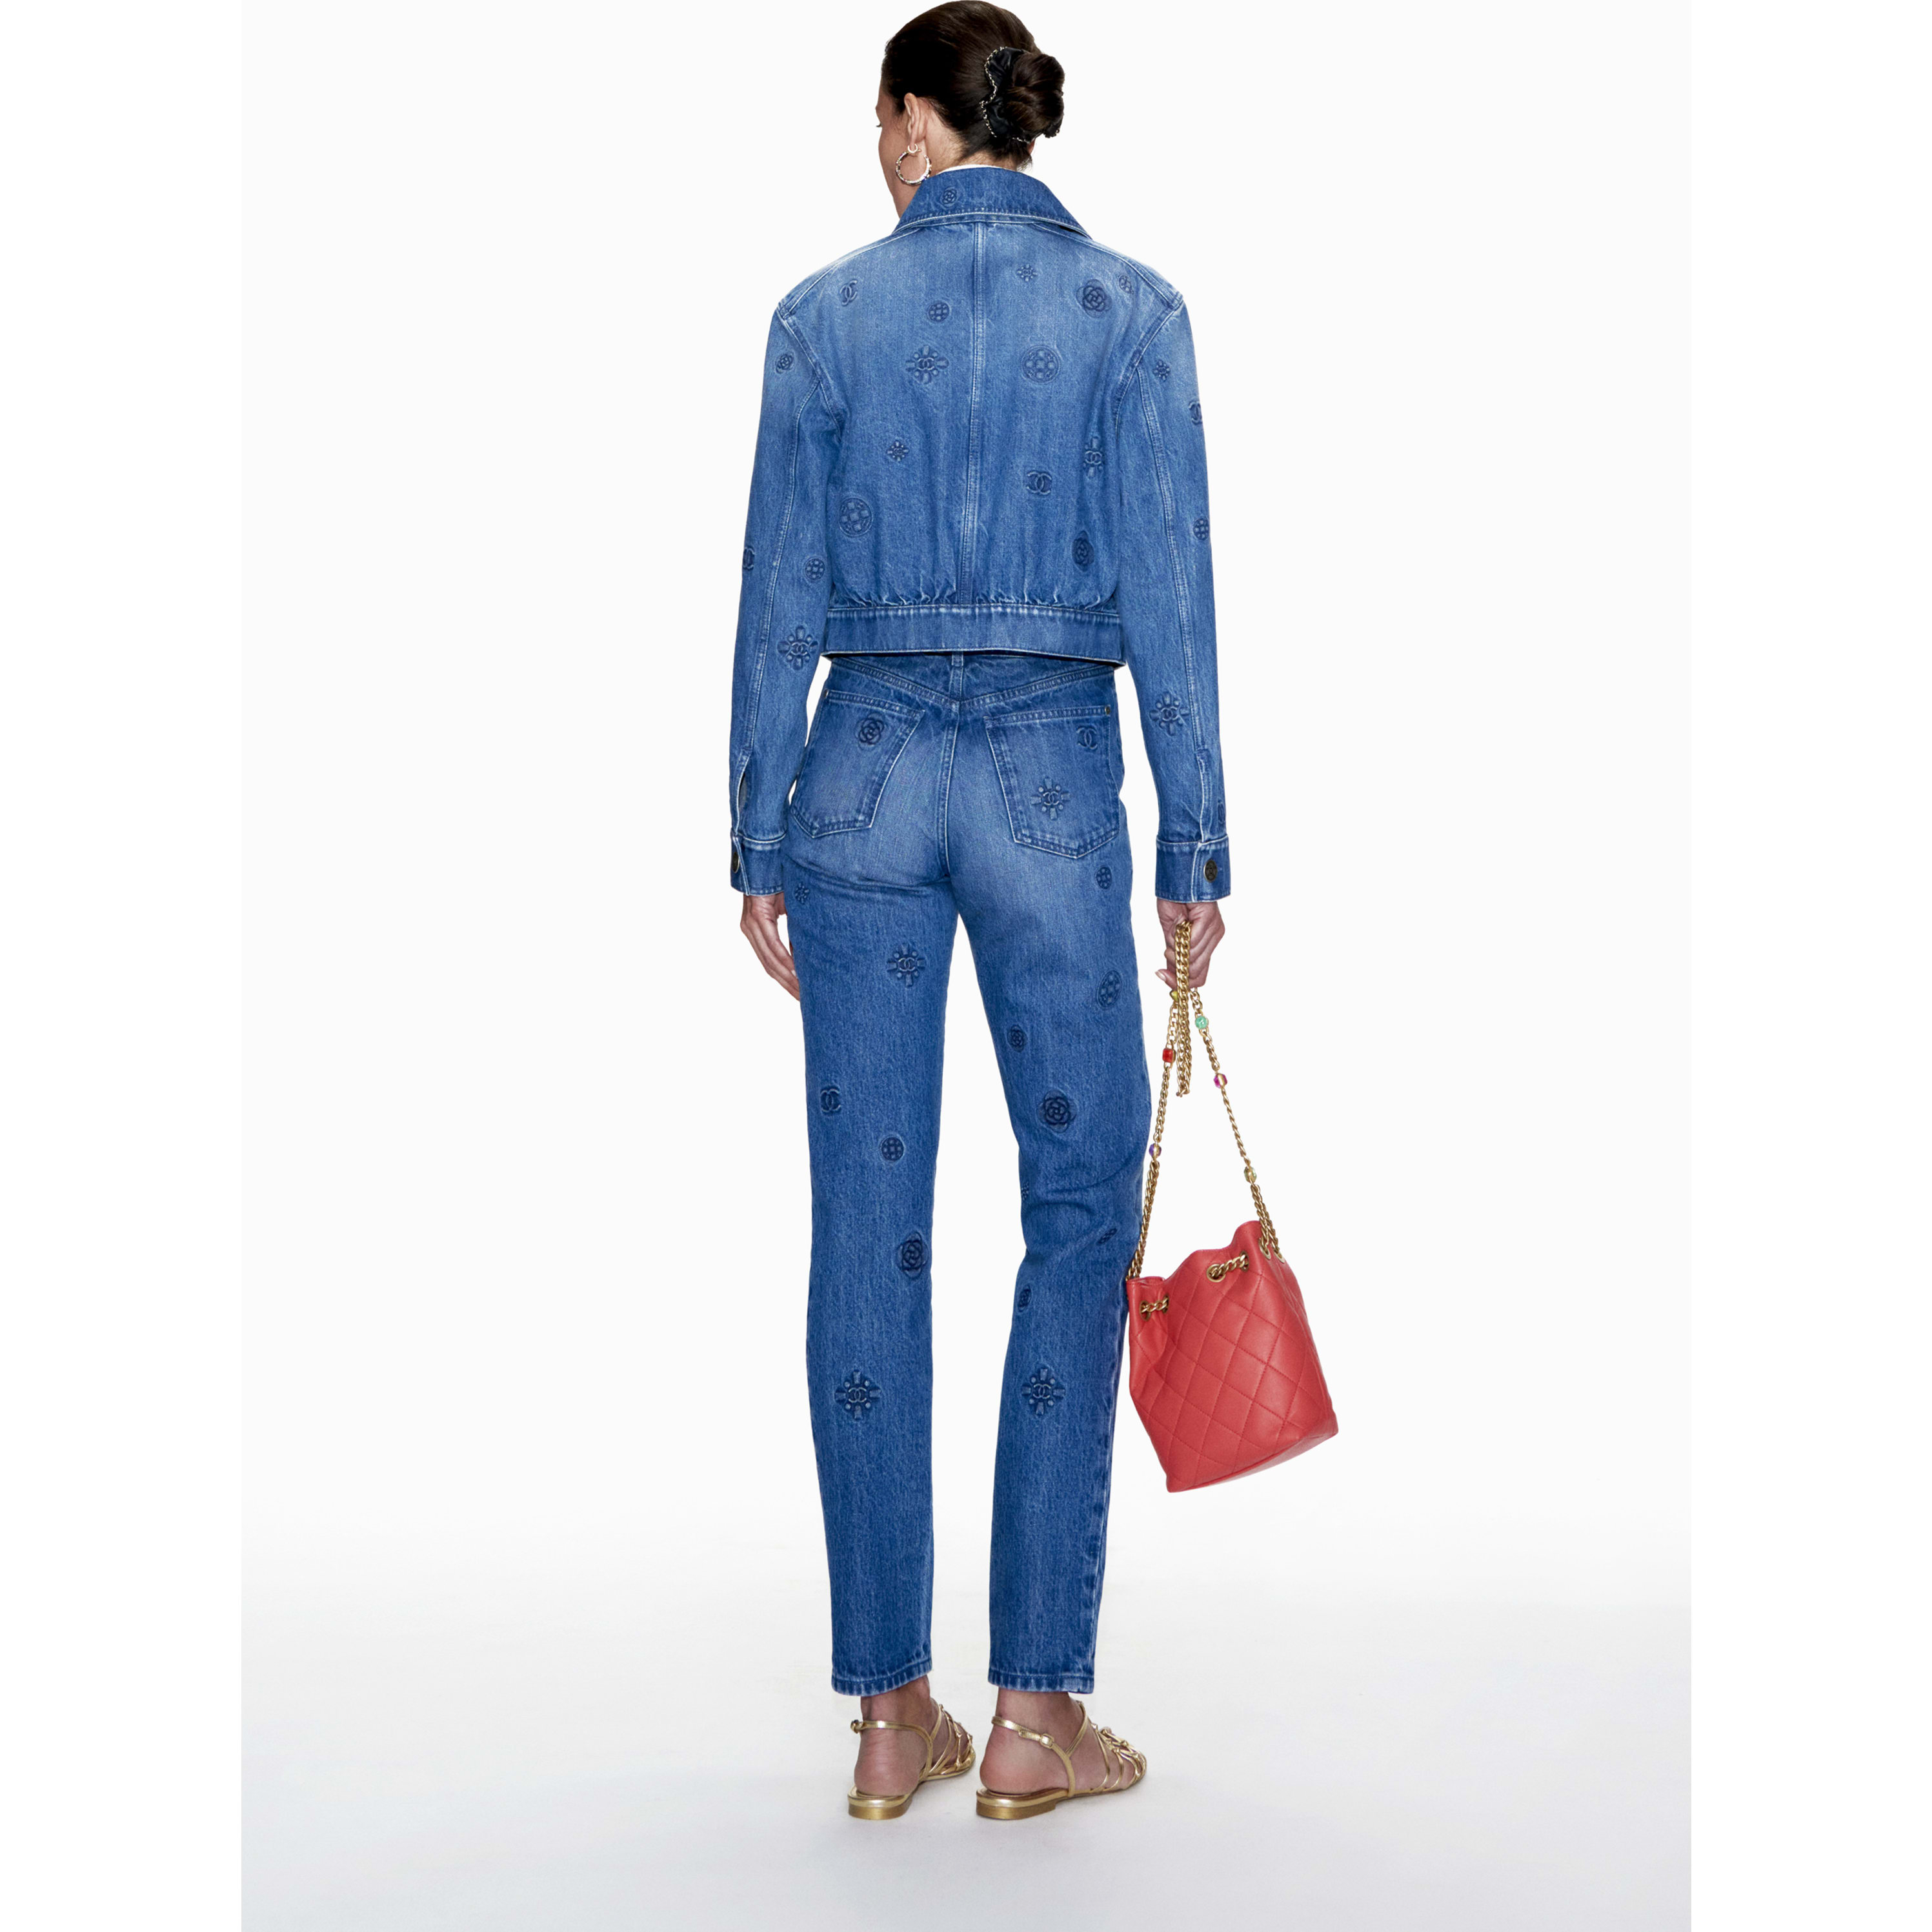 Jeans - Blue - Embroidered Washed Denim - CHANEL - Alternative view - see standard sized version